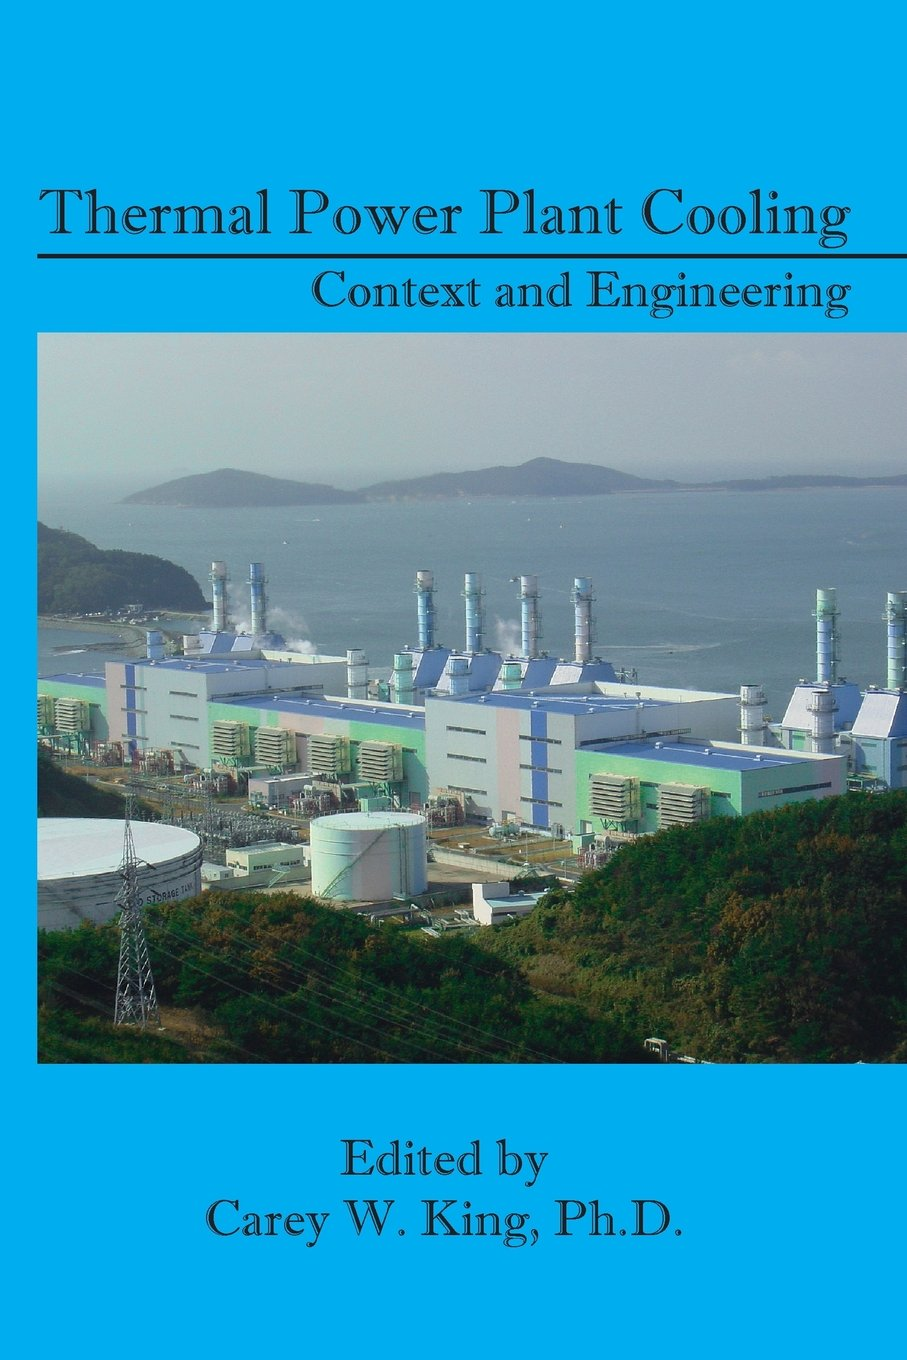 The Context and Engineering of Thermal Power Plant Cooling